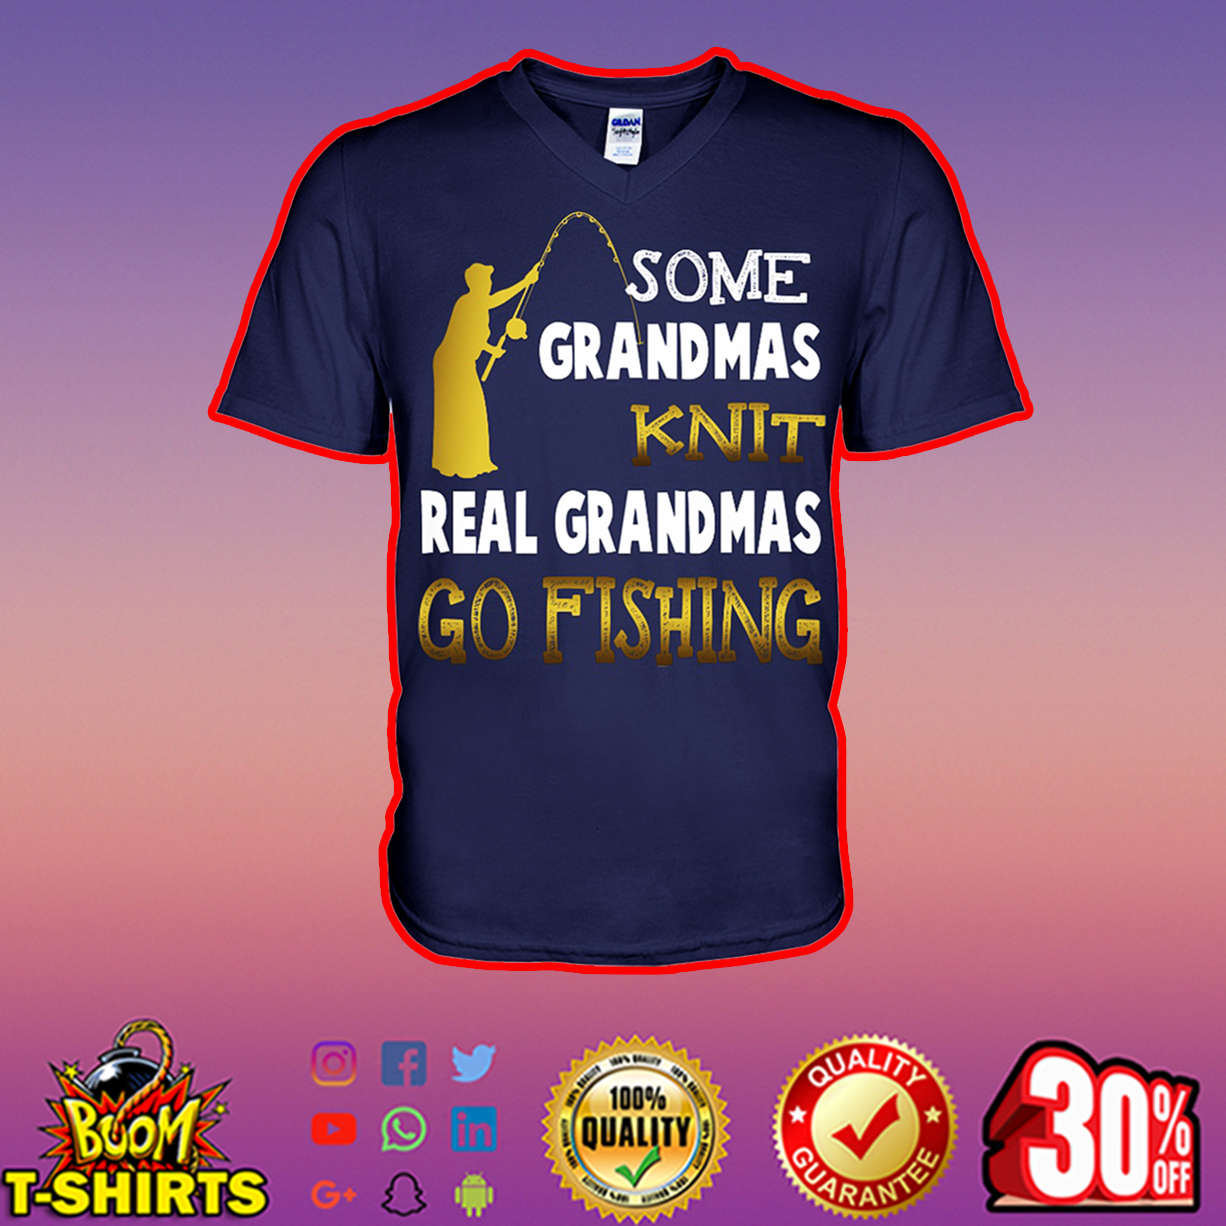 Some grandmas knit real grandmas go fishing v-neck